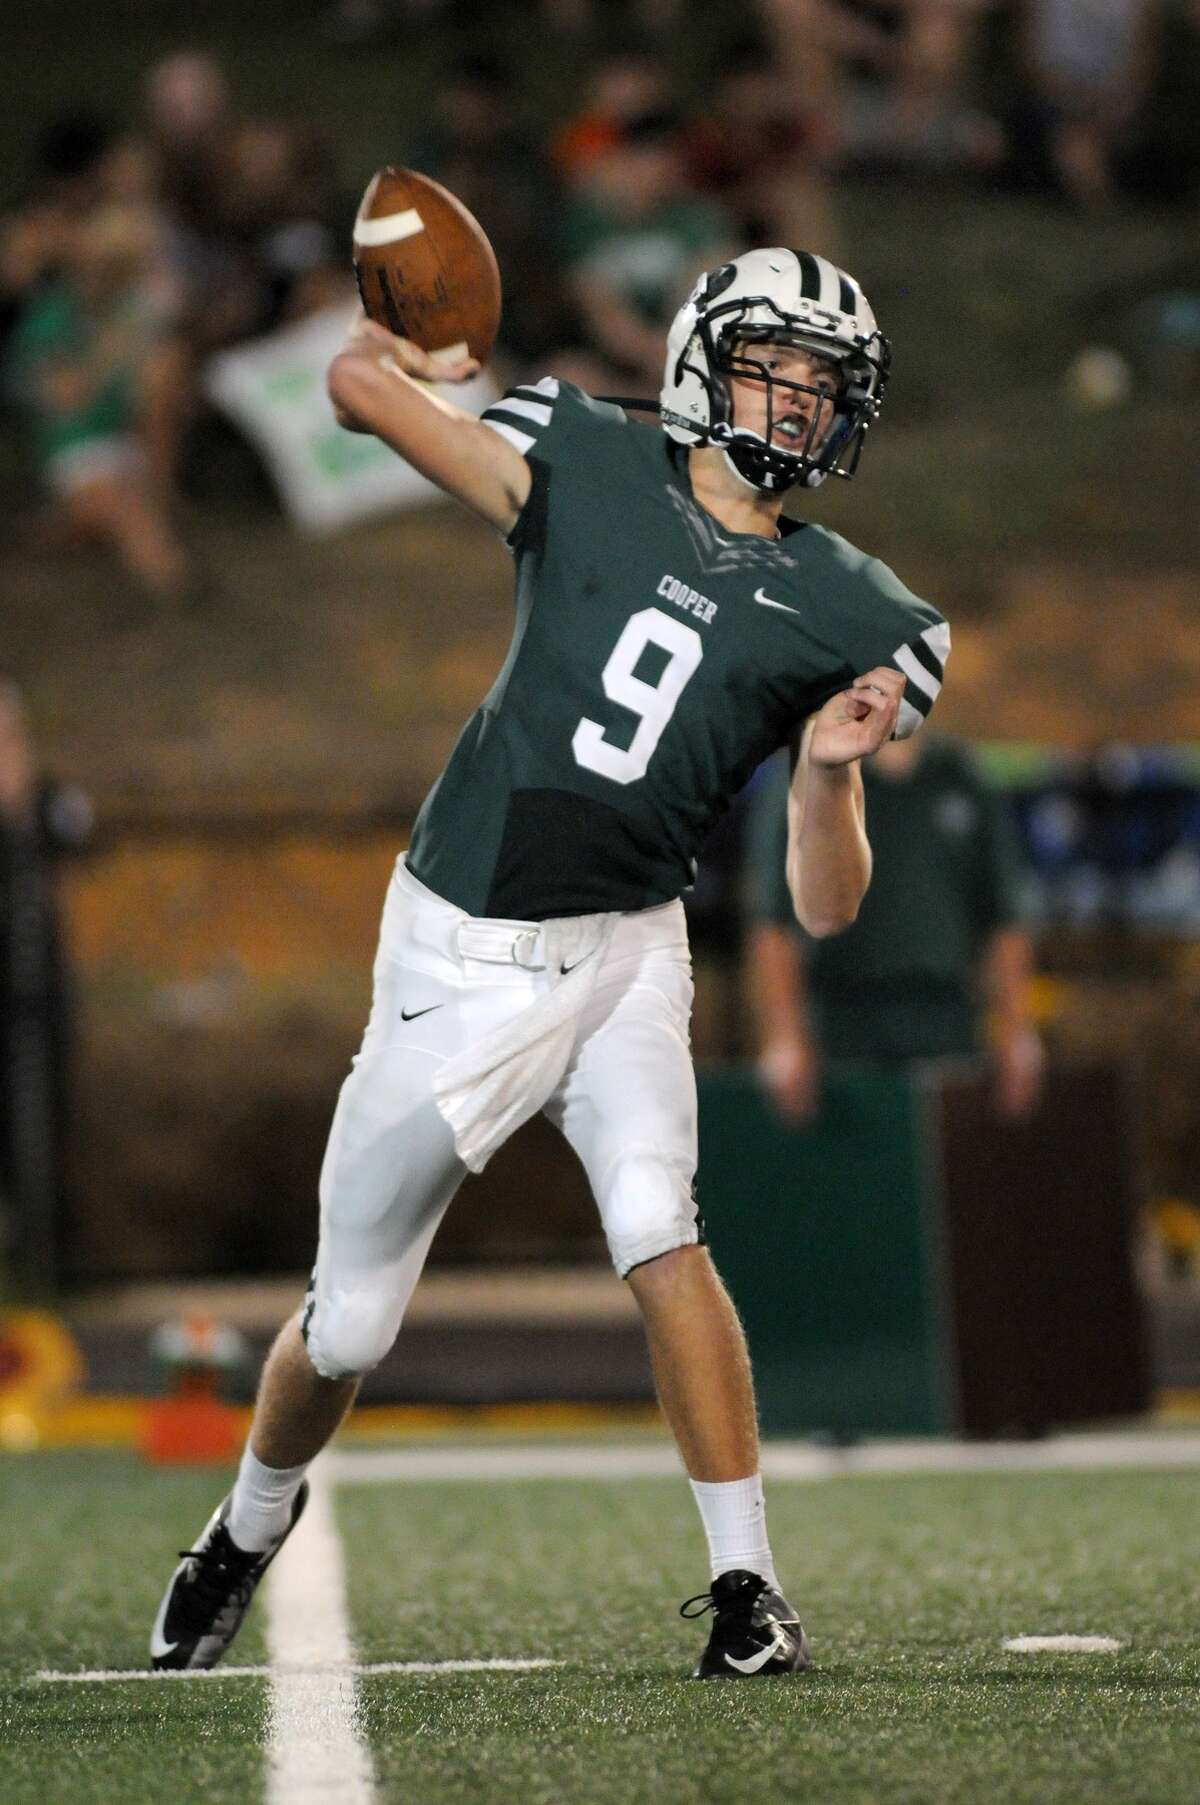 John Cooper School sophomore quarterback Michael Gerber has been solid for the Dragons this year.